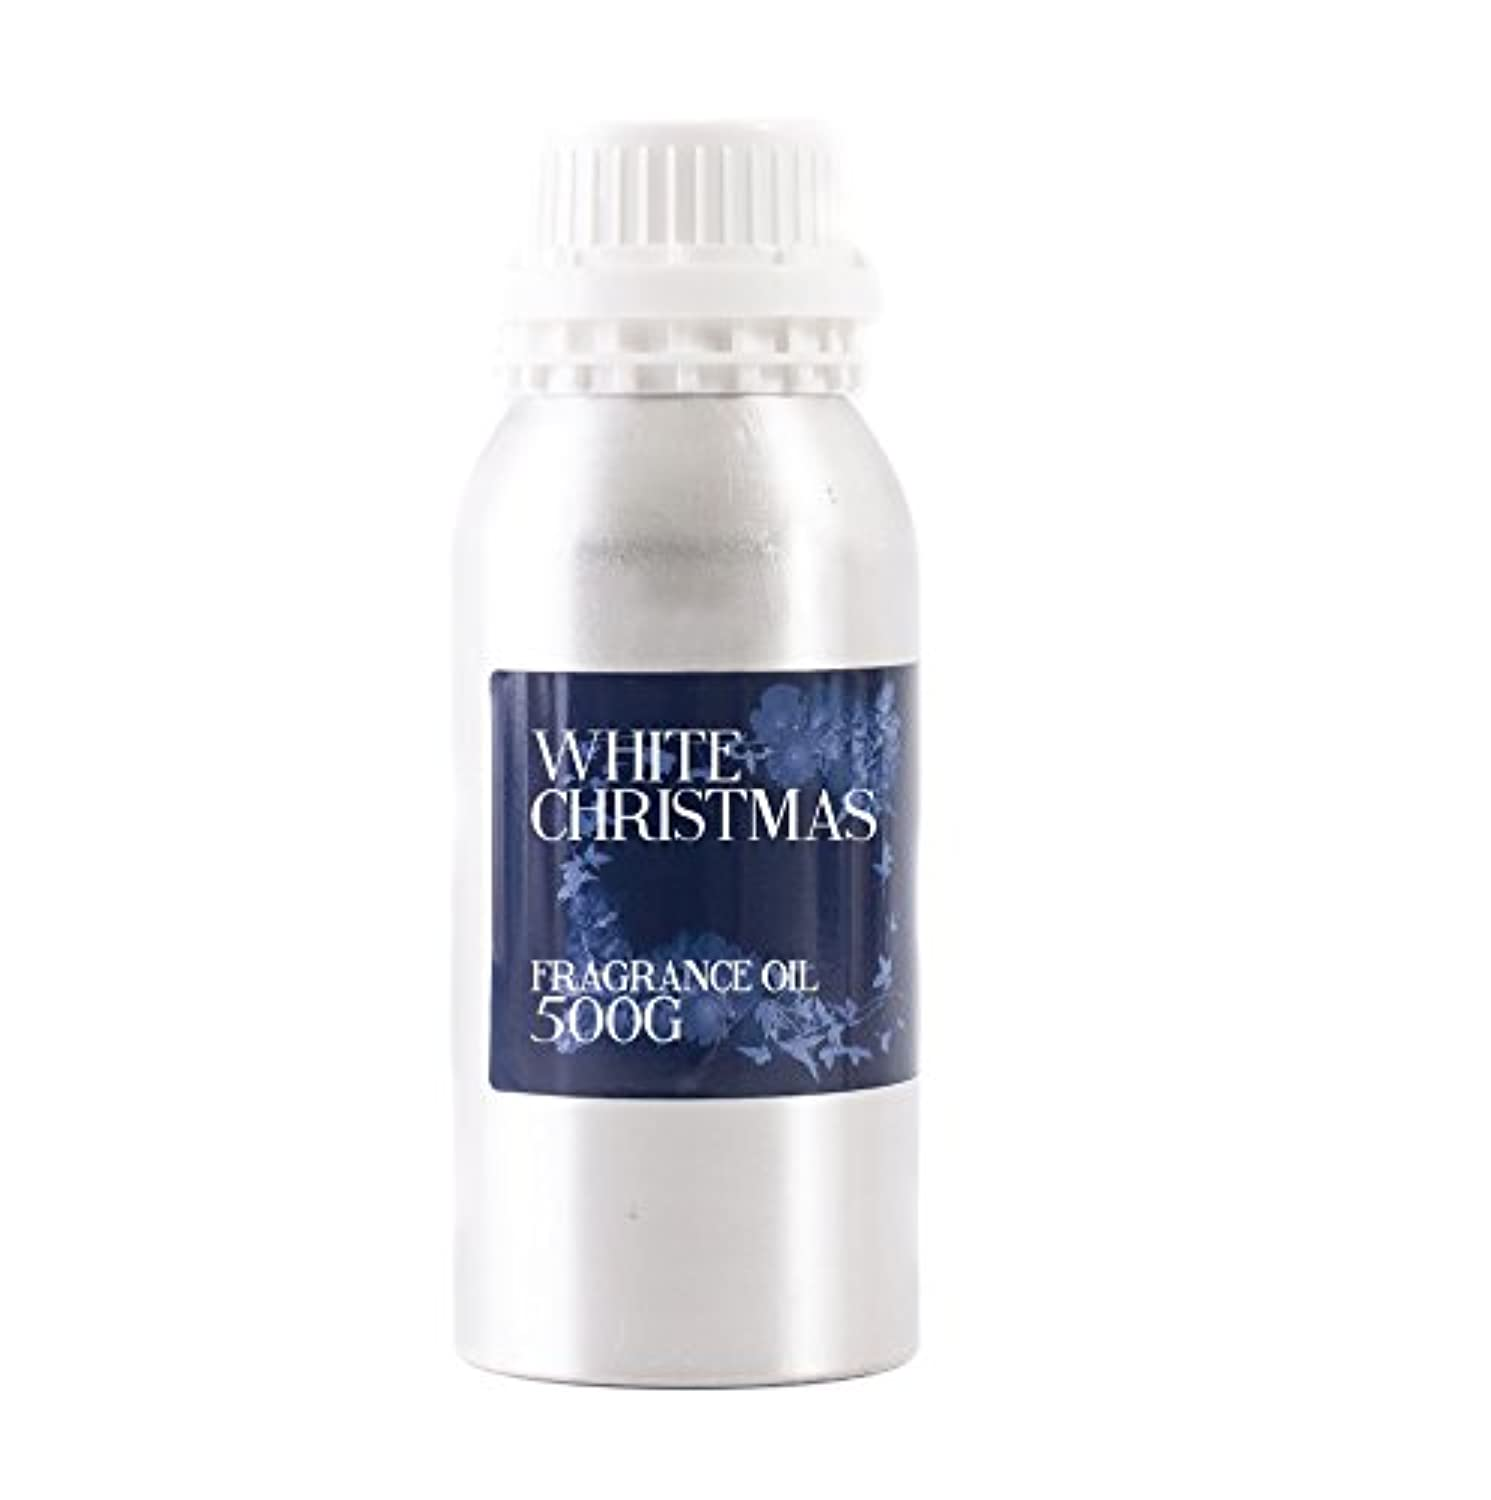 Mystic Moments | White Christmas Fragrance Oil - 500g